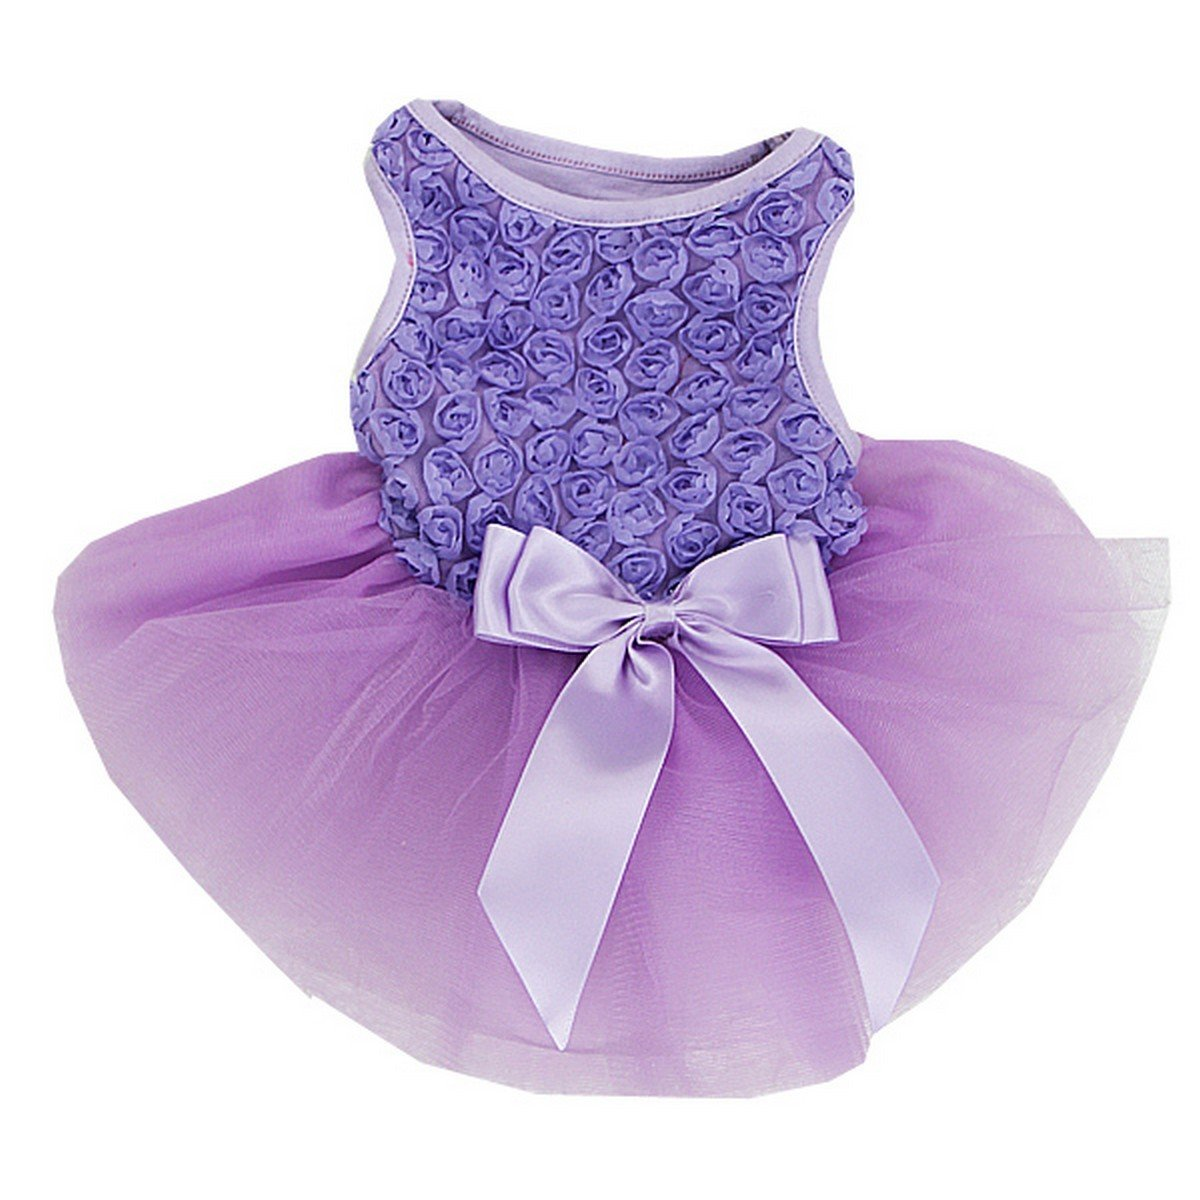 L pinkttes Dog Dress Dog Dress Large Lavender